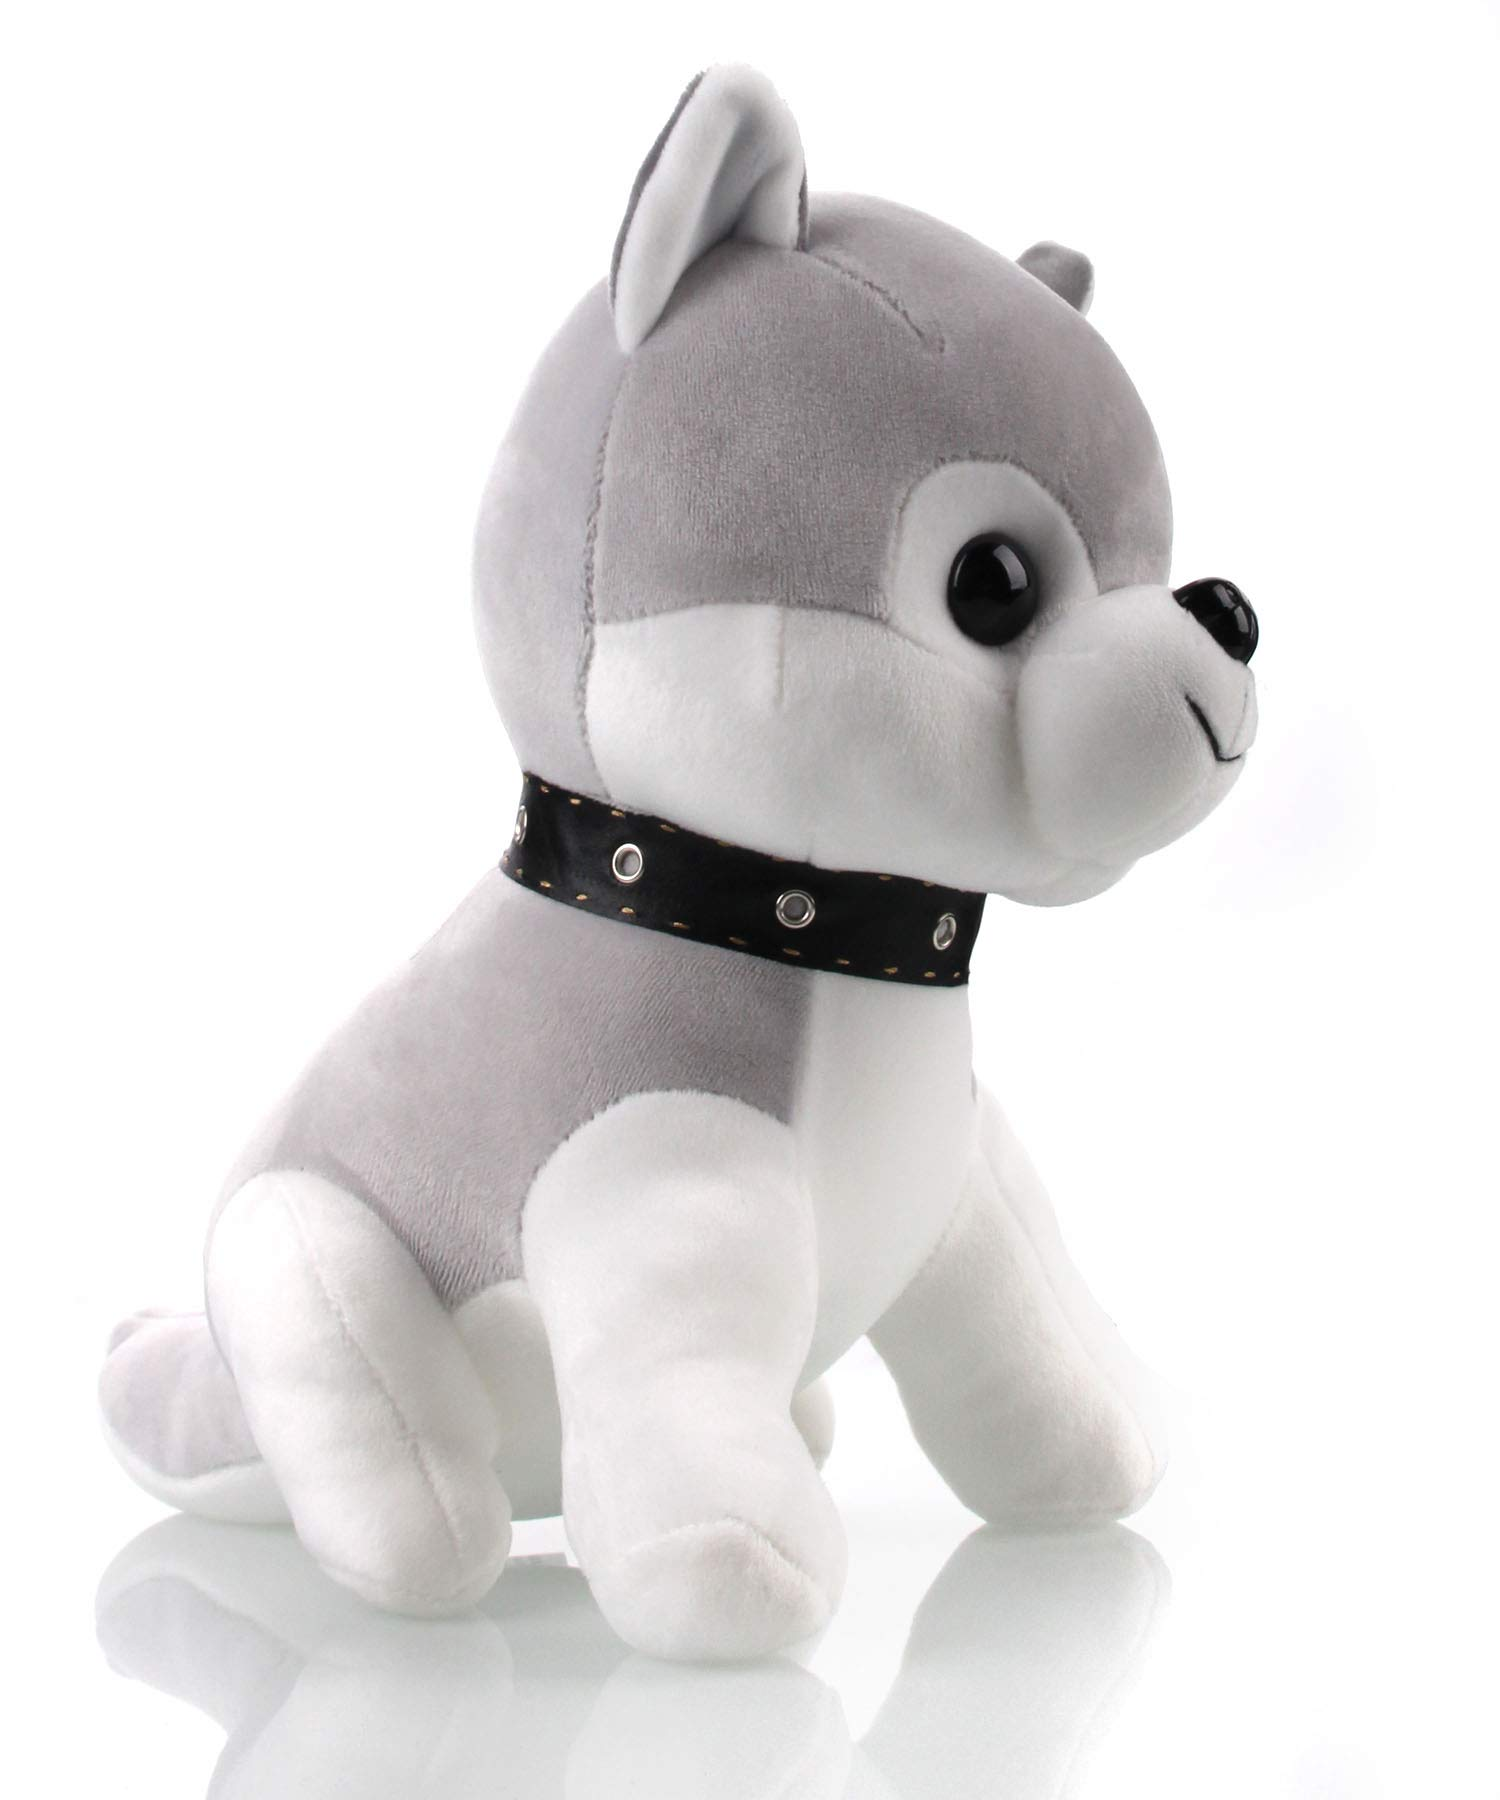 AIXINI Soft Plush Husky Puppy Dog Stuffed Animals Toys, Cute Elastic – Gray 11inch Gifts for Kids Baby Party Funny Bed Time